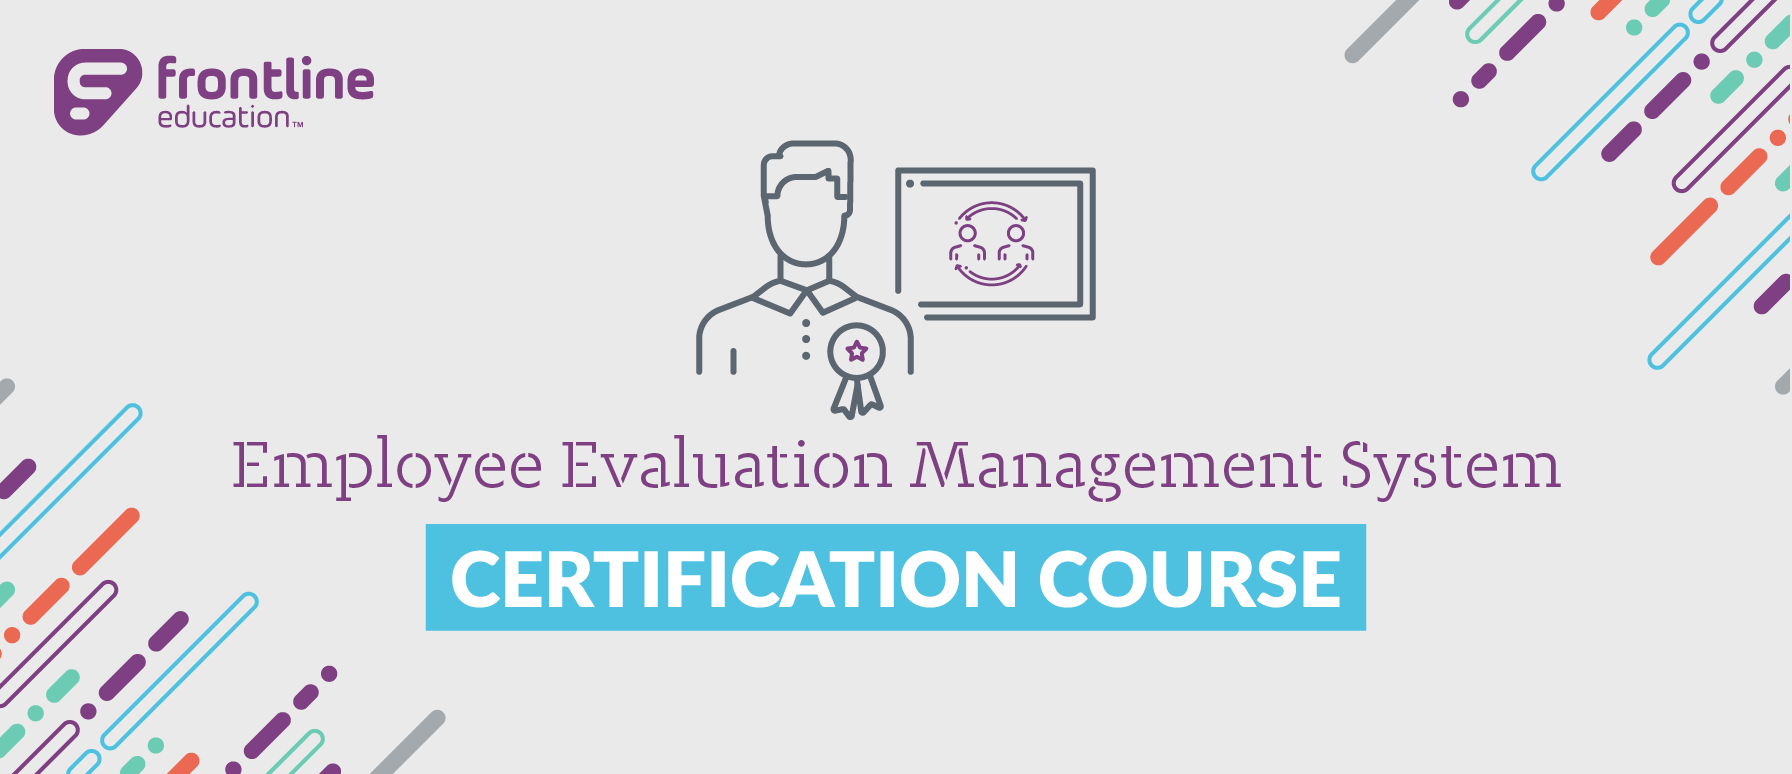 Employee Evaluation Management Certification Course - Princeton, NJ